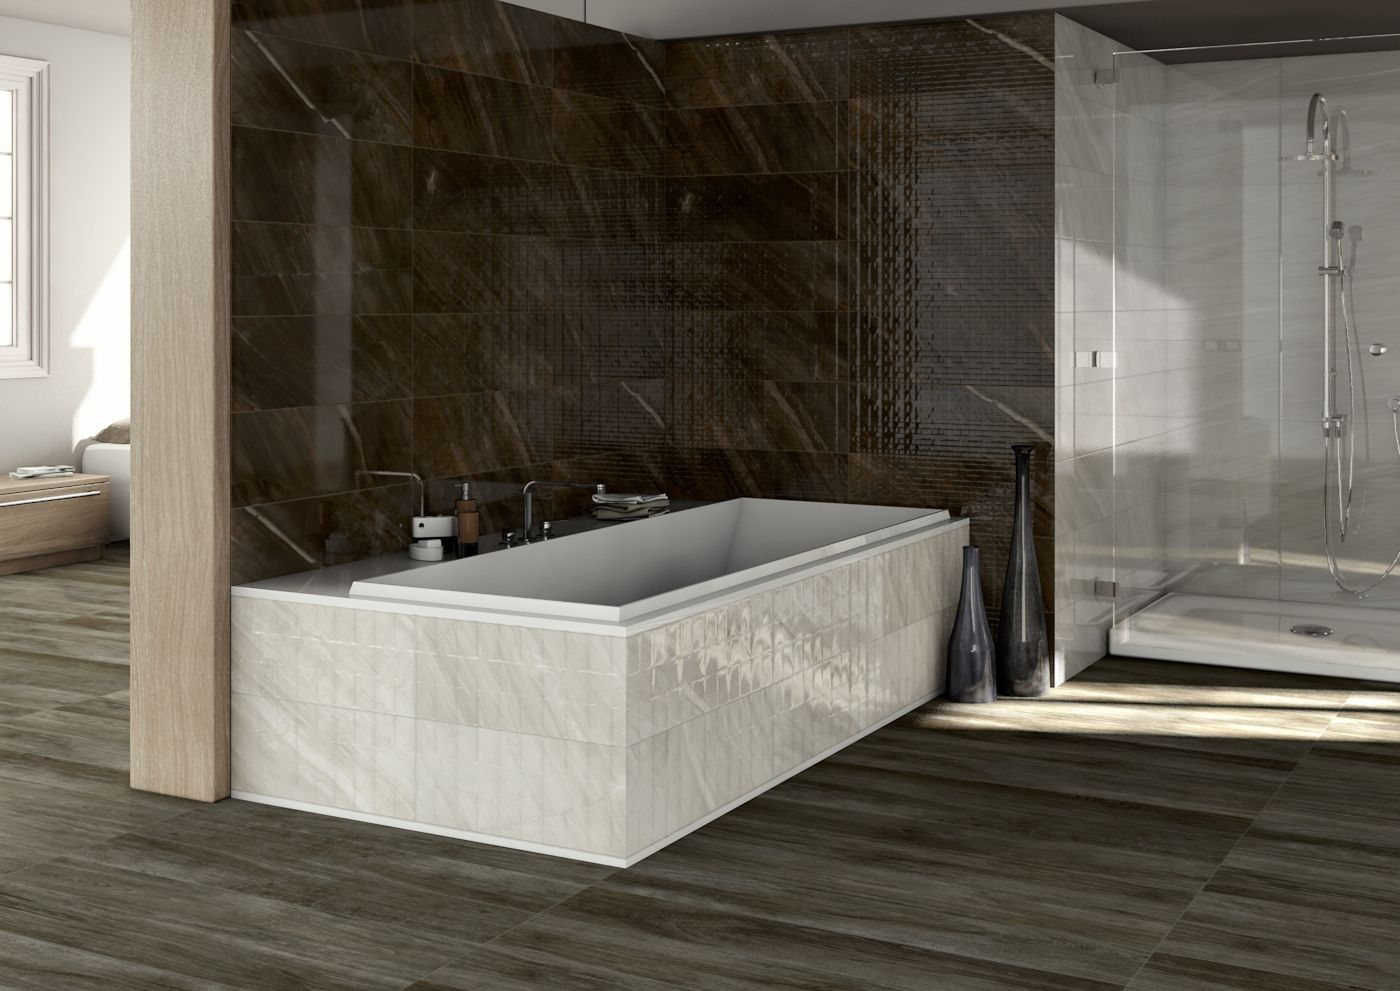 Marble arch collection tilemaryland iris tile collezione marble arch di iris ceramica doublecrazyfo Image collections